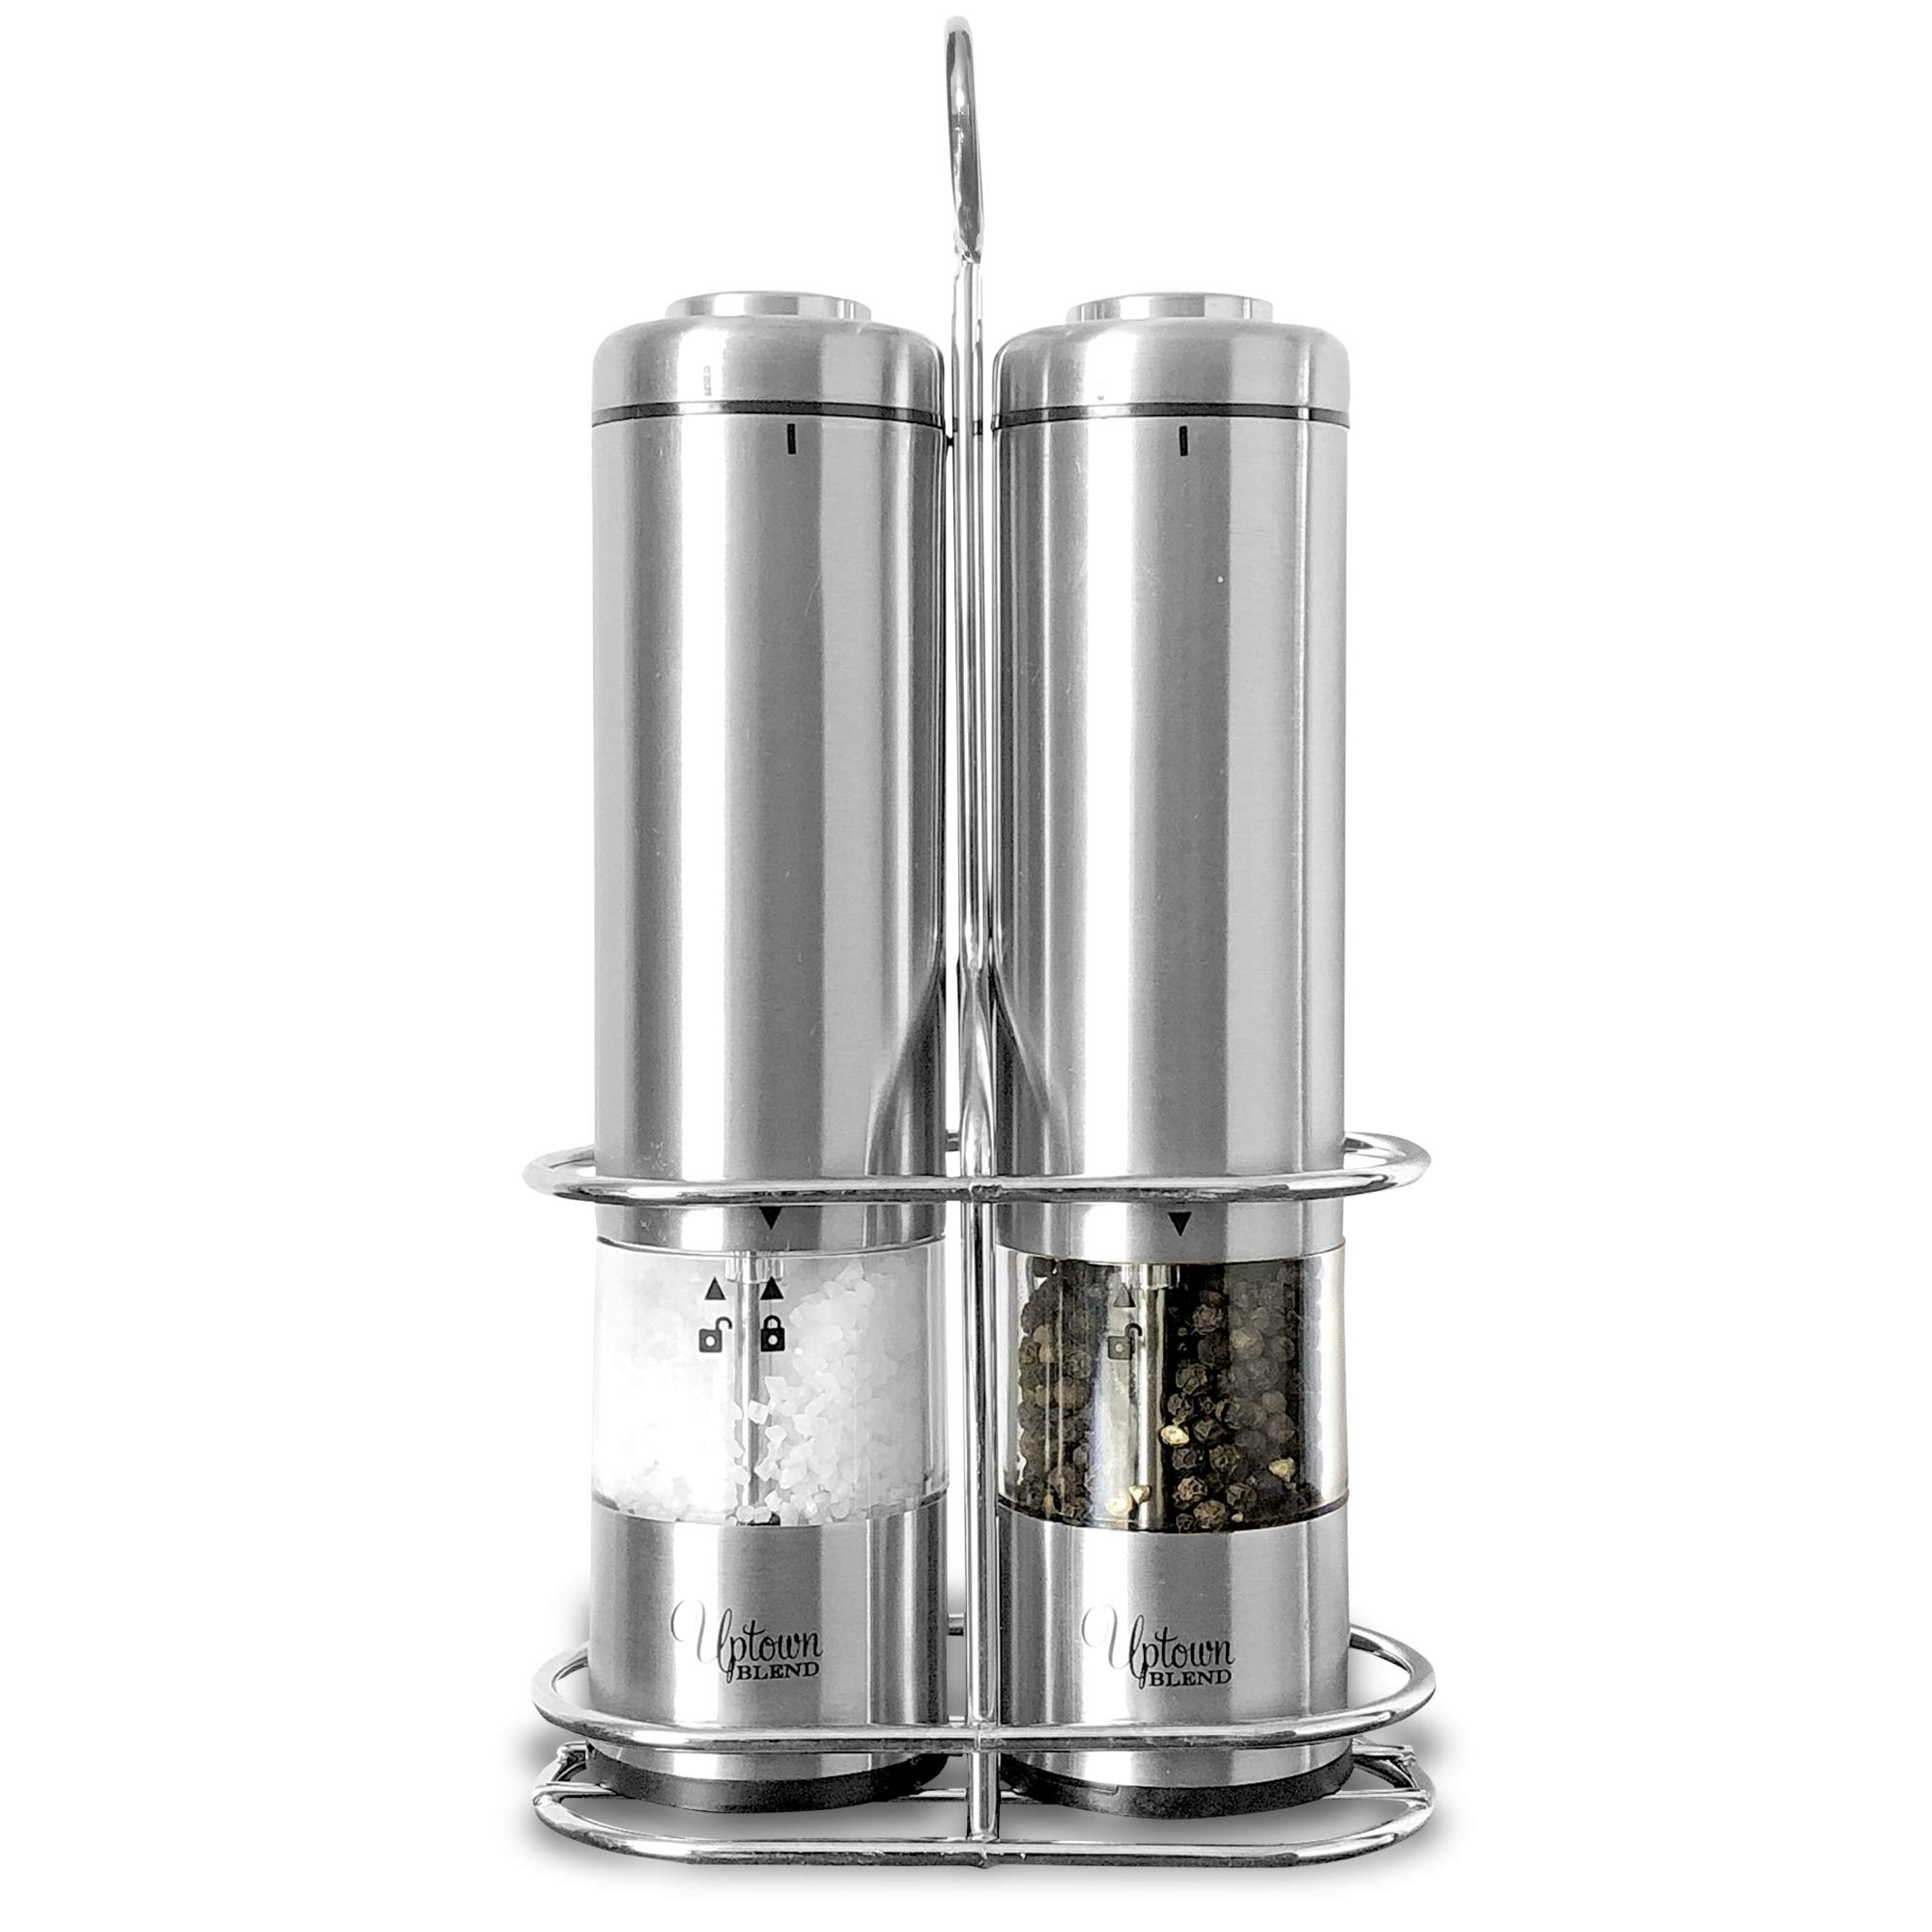 Uptown Blend - Electric Stainless Steel Salt and Pepper Grinder Set - Battery Operated Salt&Pepper Mills with Stand - Automatic Power Shakers - 2 Ceramic Adjustable Coarse Grinders with LED Light